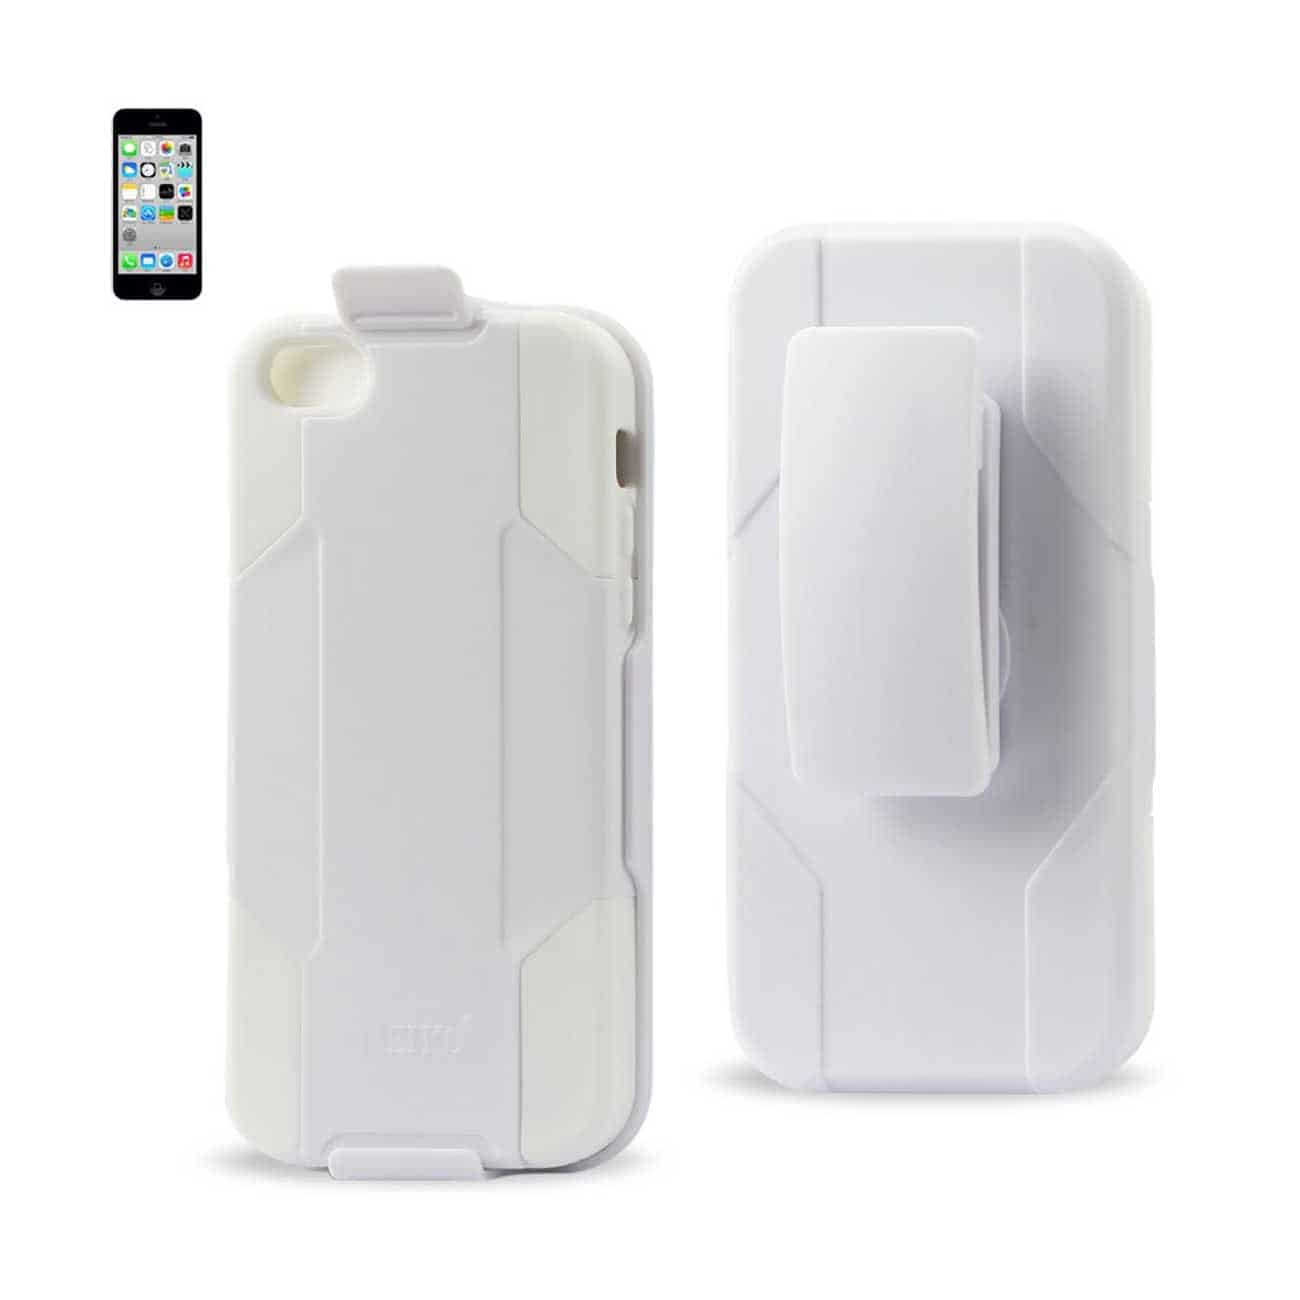 IPHONE 5C HYBRID HEAVY DUTY HOLSTER COMBO CASE IN WHITE